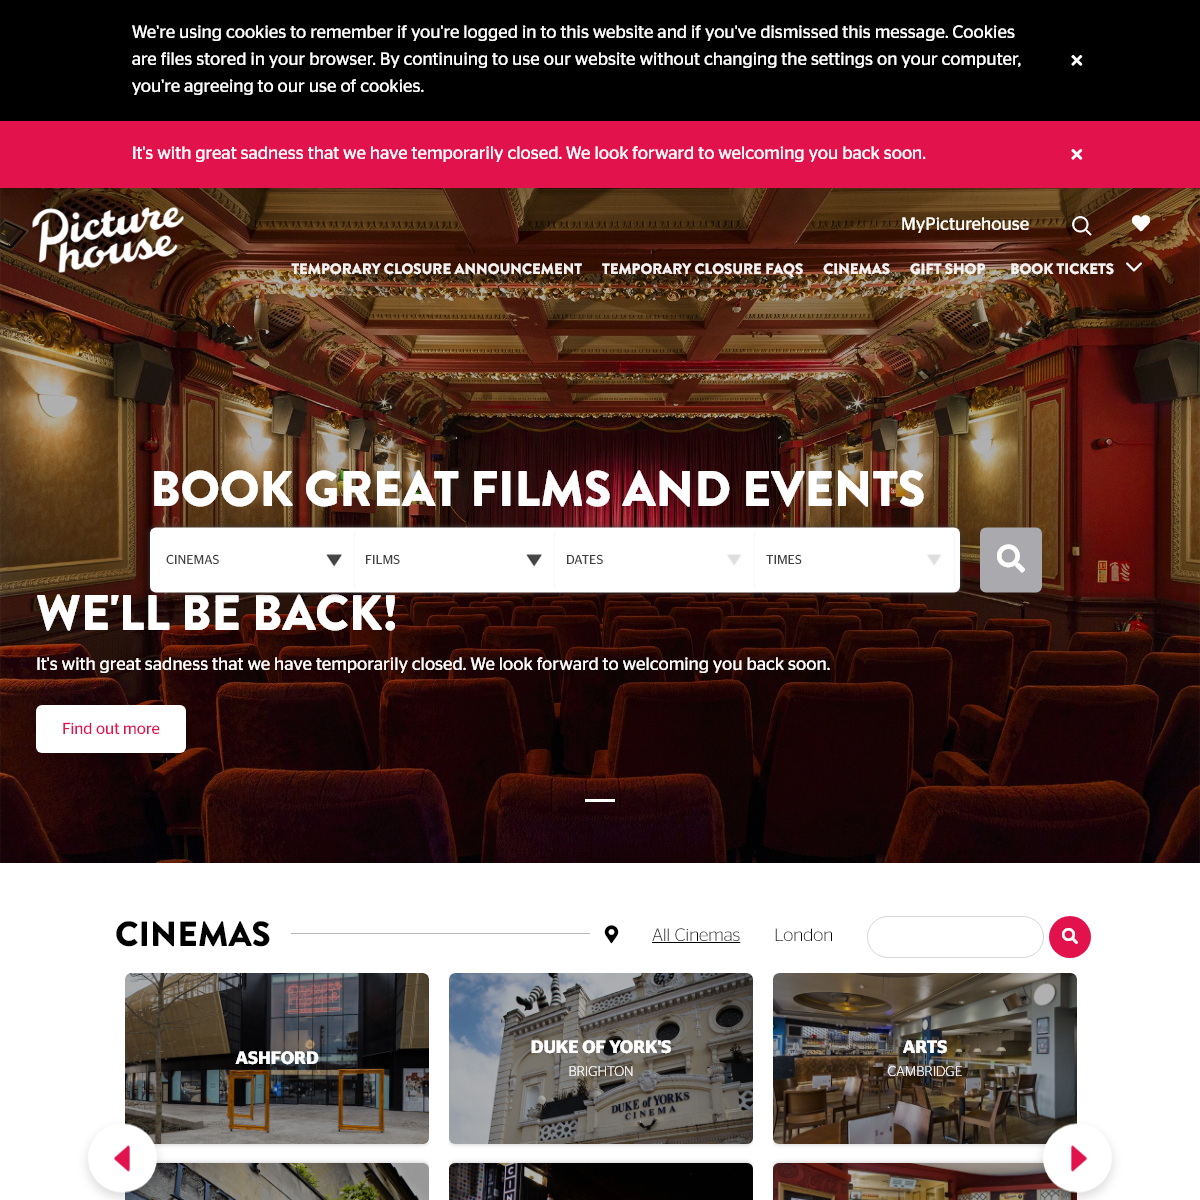 Picturehouse Cinemas - Book Now For The Best Films And Events